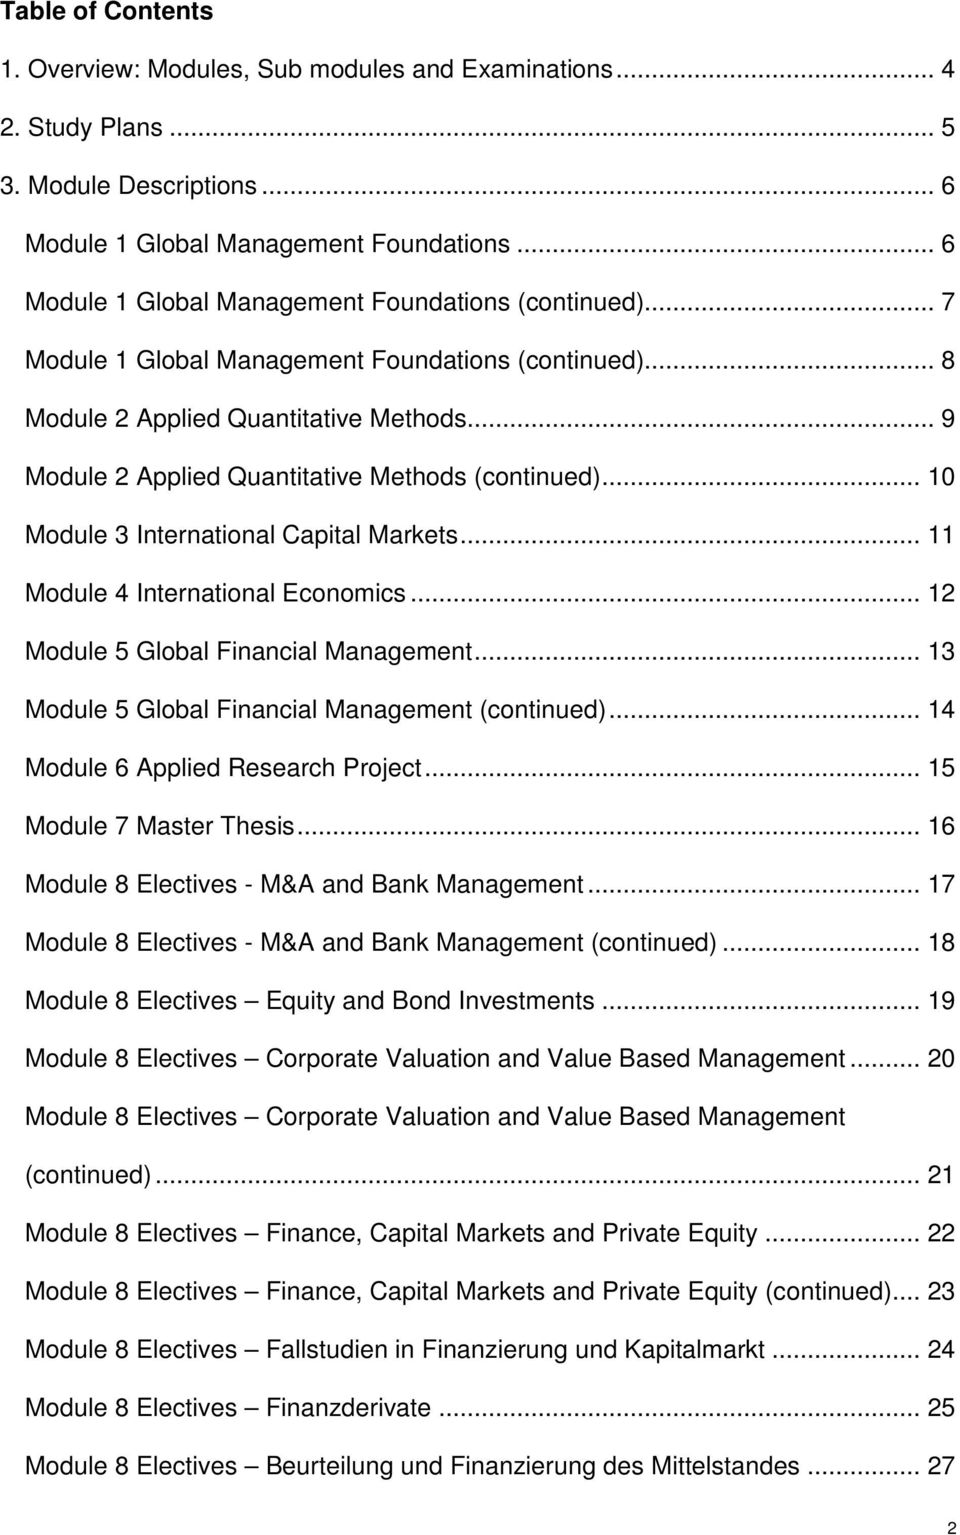 .. 9 Module 2 Applied Quantitative Methods (continued)... 10 Module 3 International Capital Markets... 11 Module 4 International Economics... 12 Module 5 Global Financial Management.